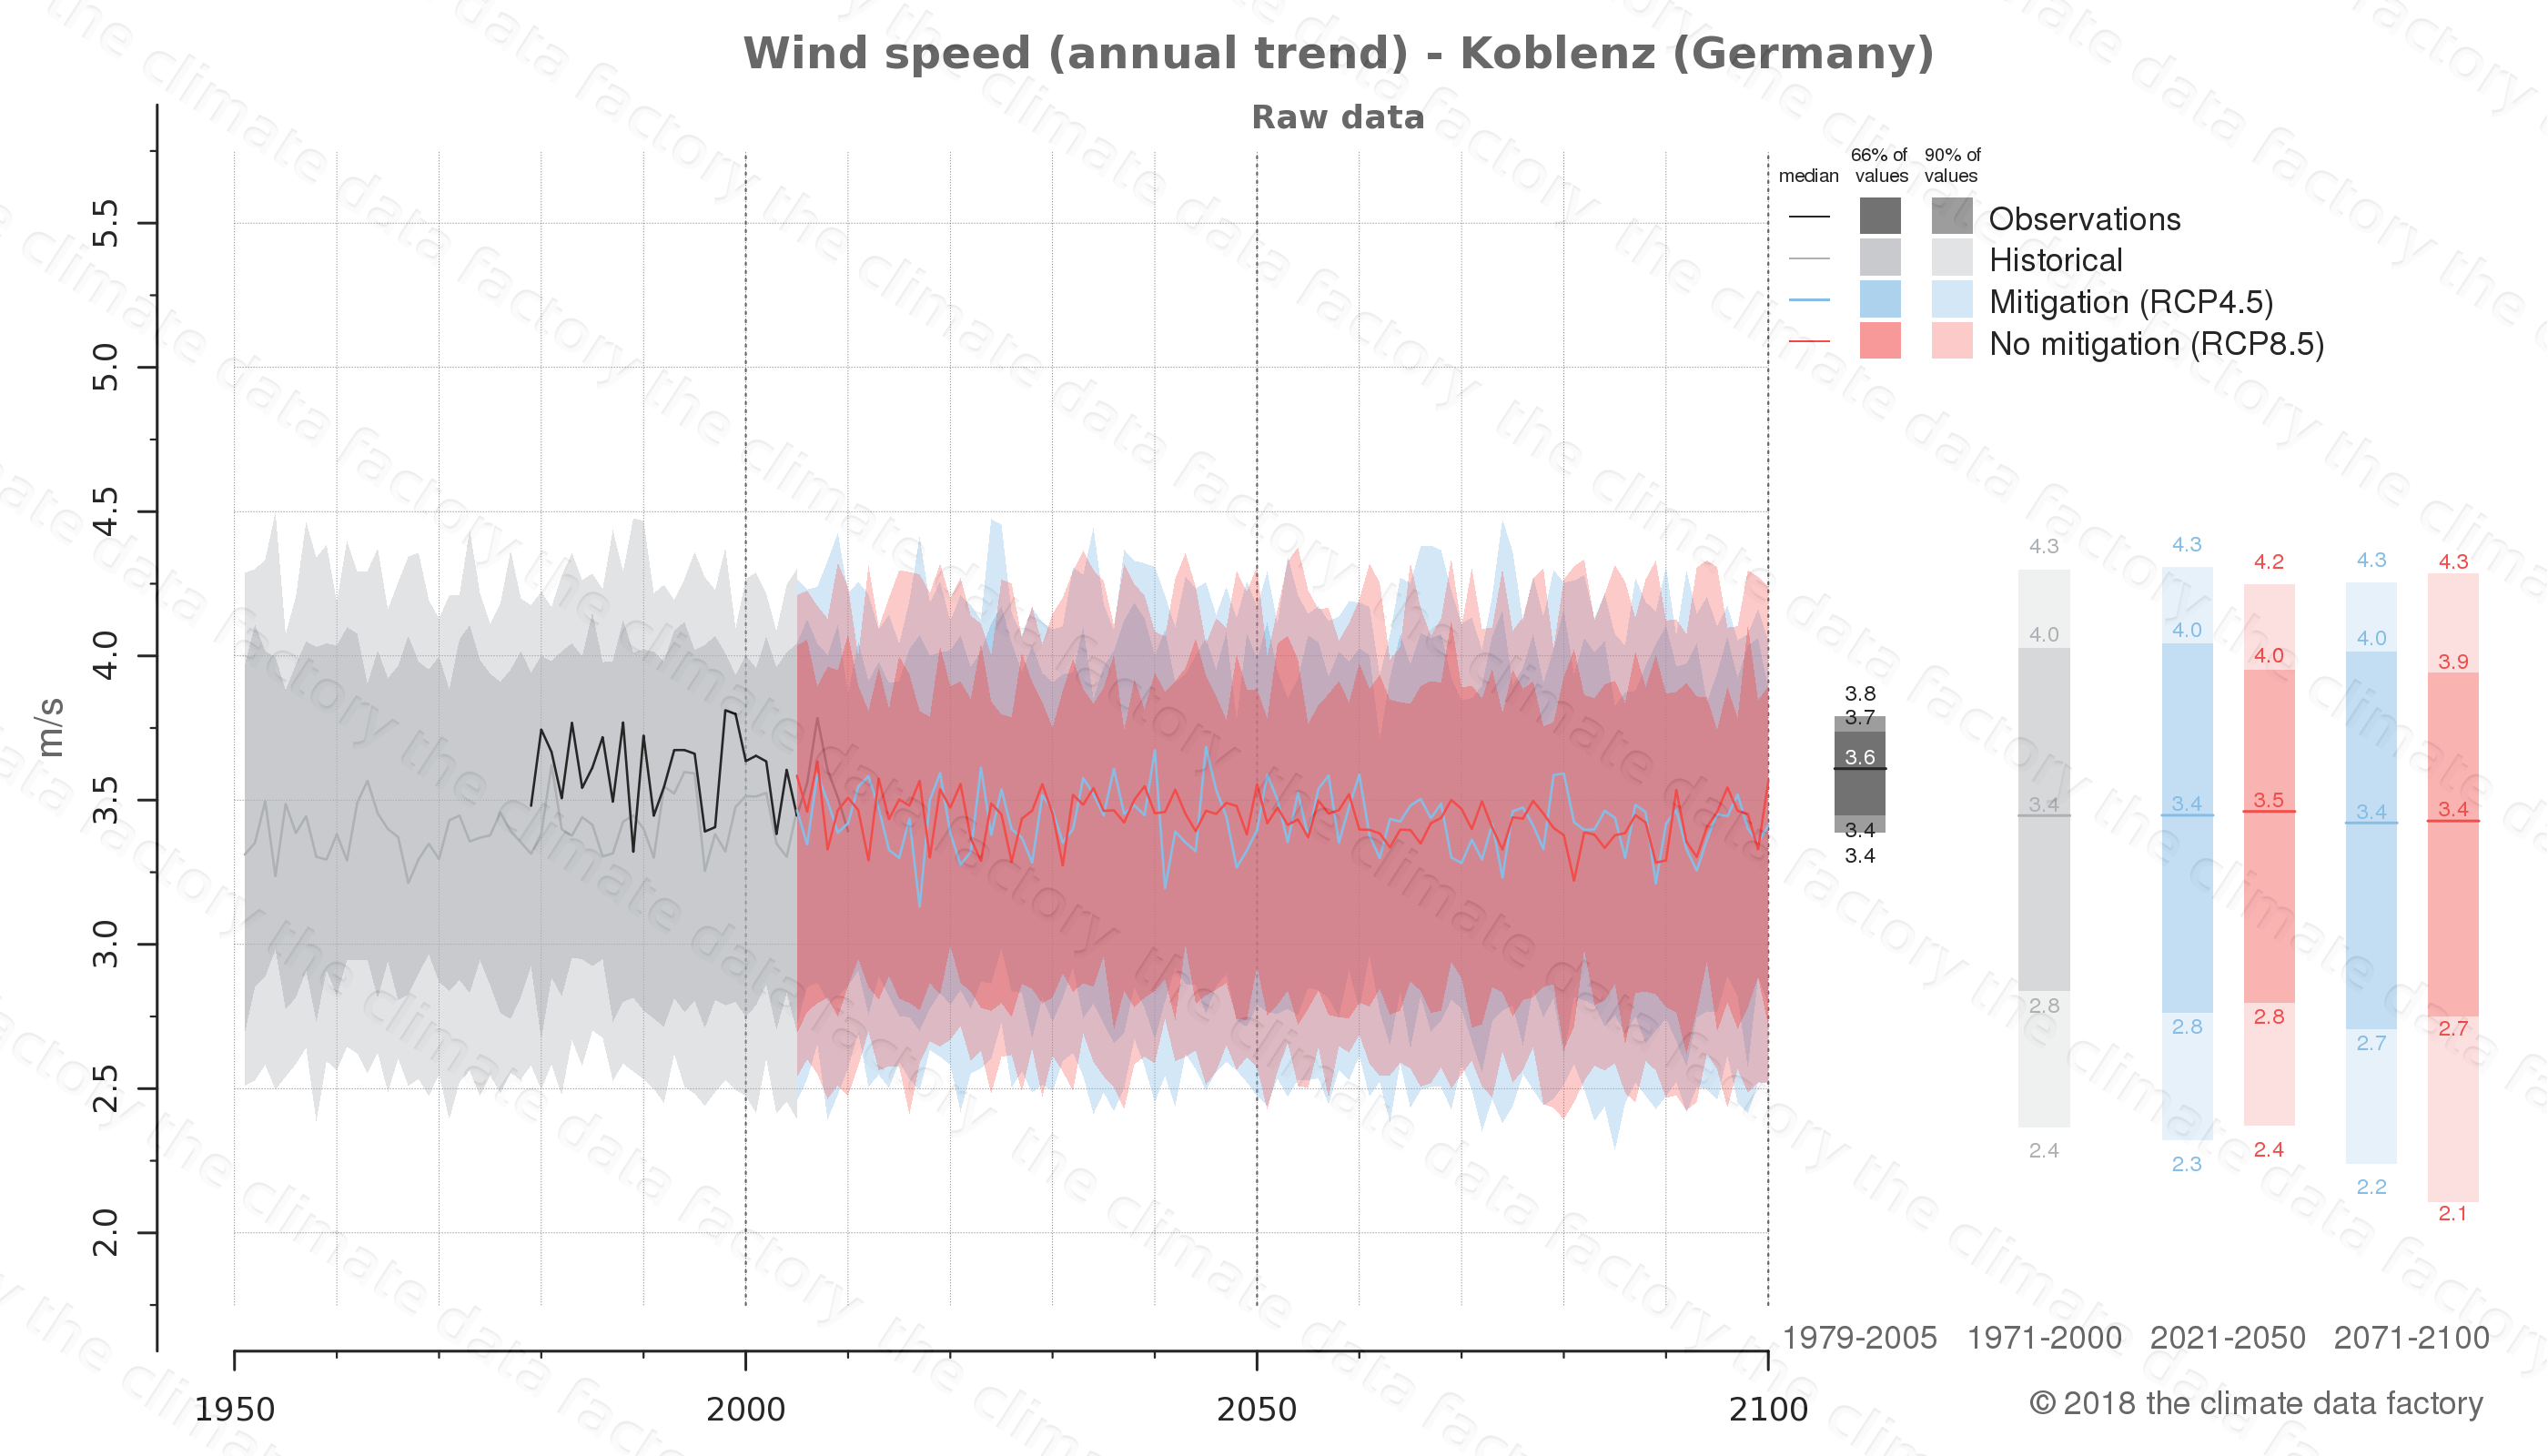 climate change data policy adaptation climate graph city data wind-speed koblenz germany